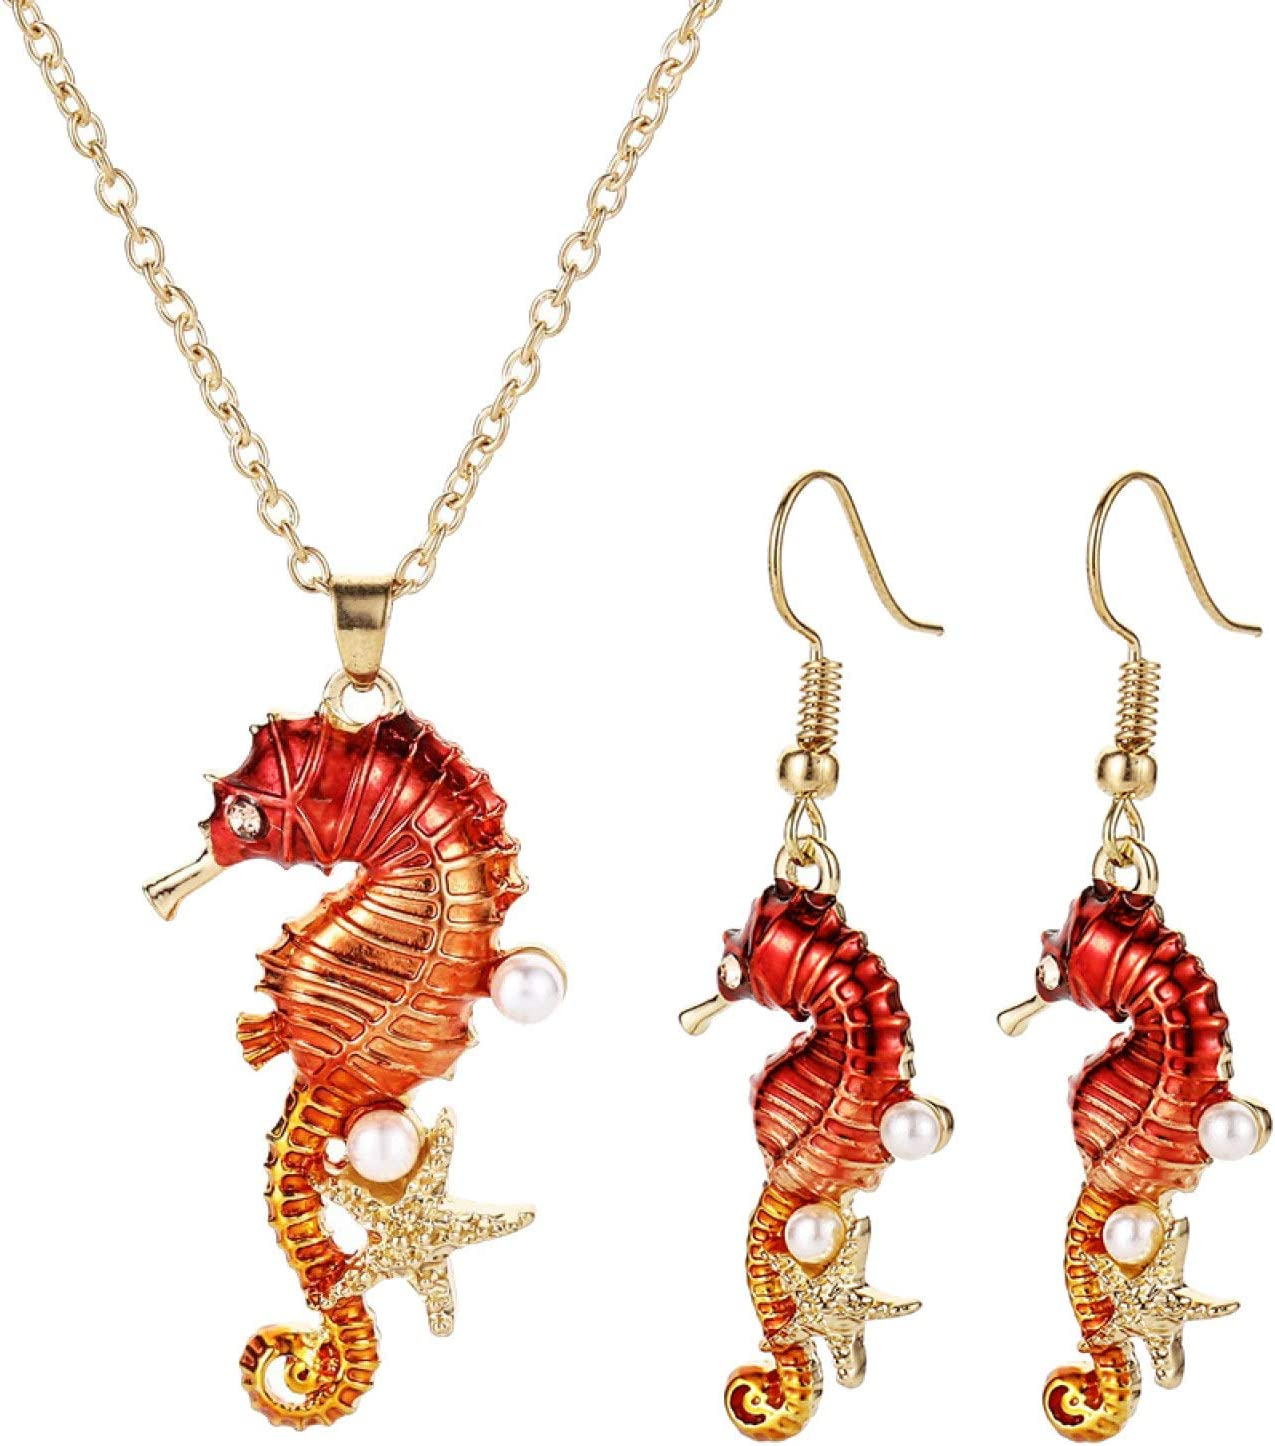 qiguch66 Earrings for Women Girls,Women Seahorse Starfish Faux Pearl Inlaid Pendant Necklace Earrings Jewelry Set - Golden